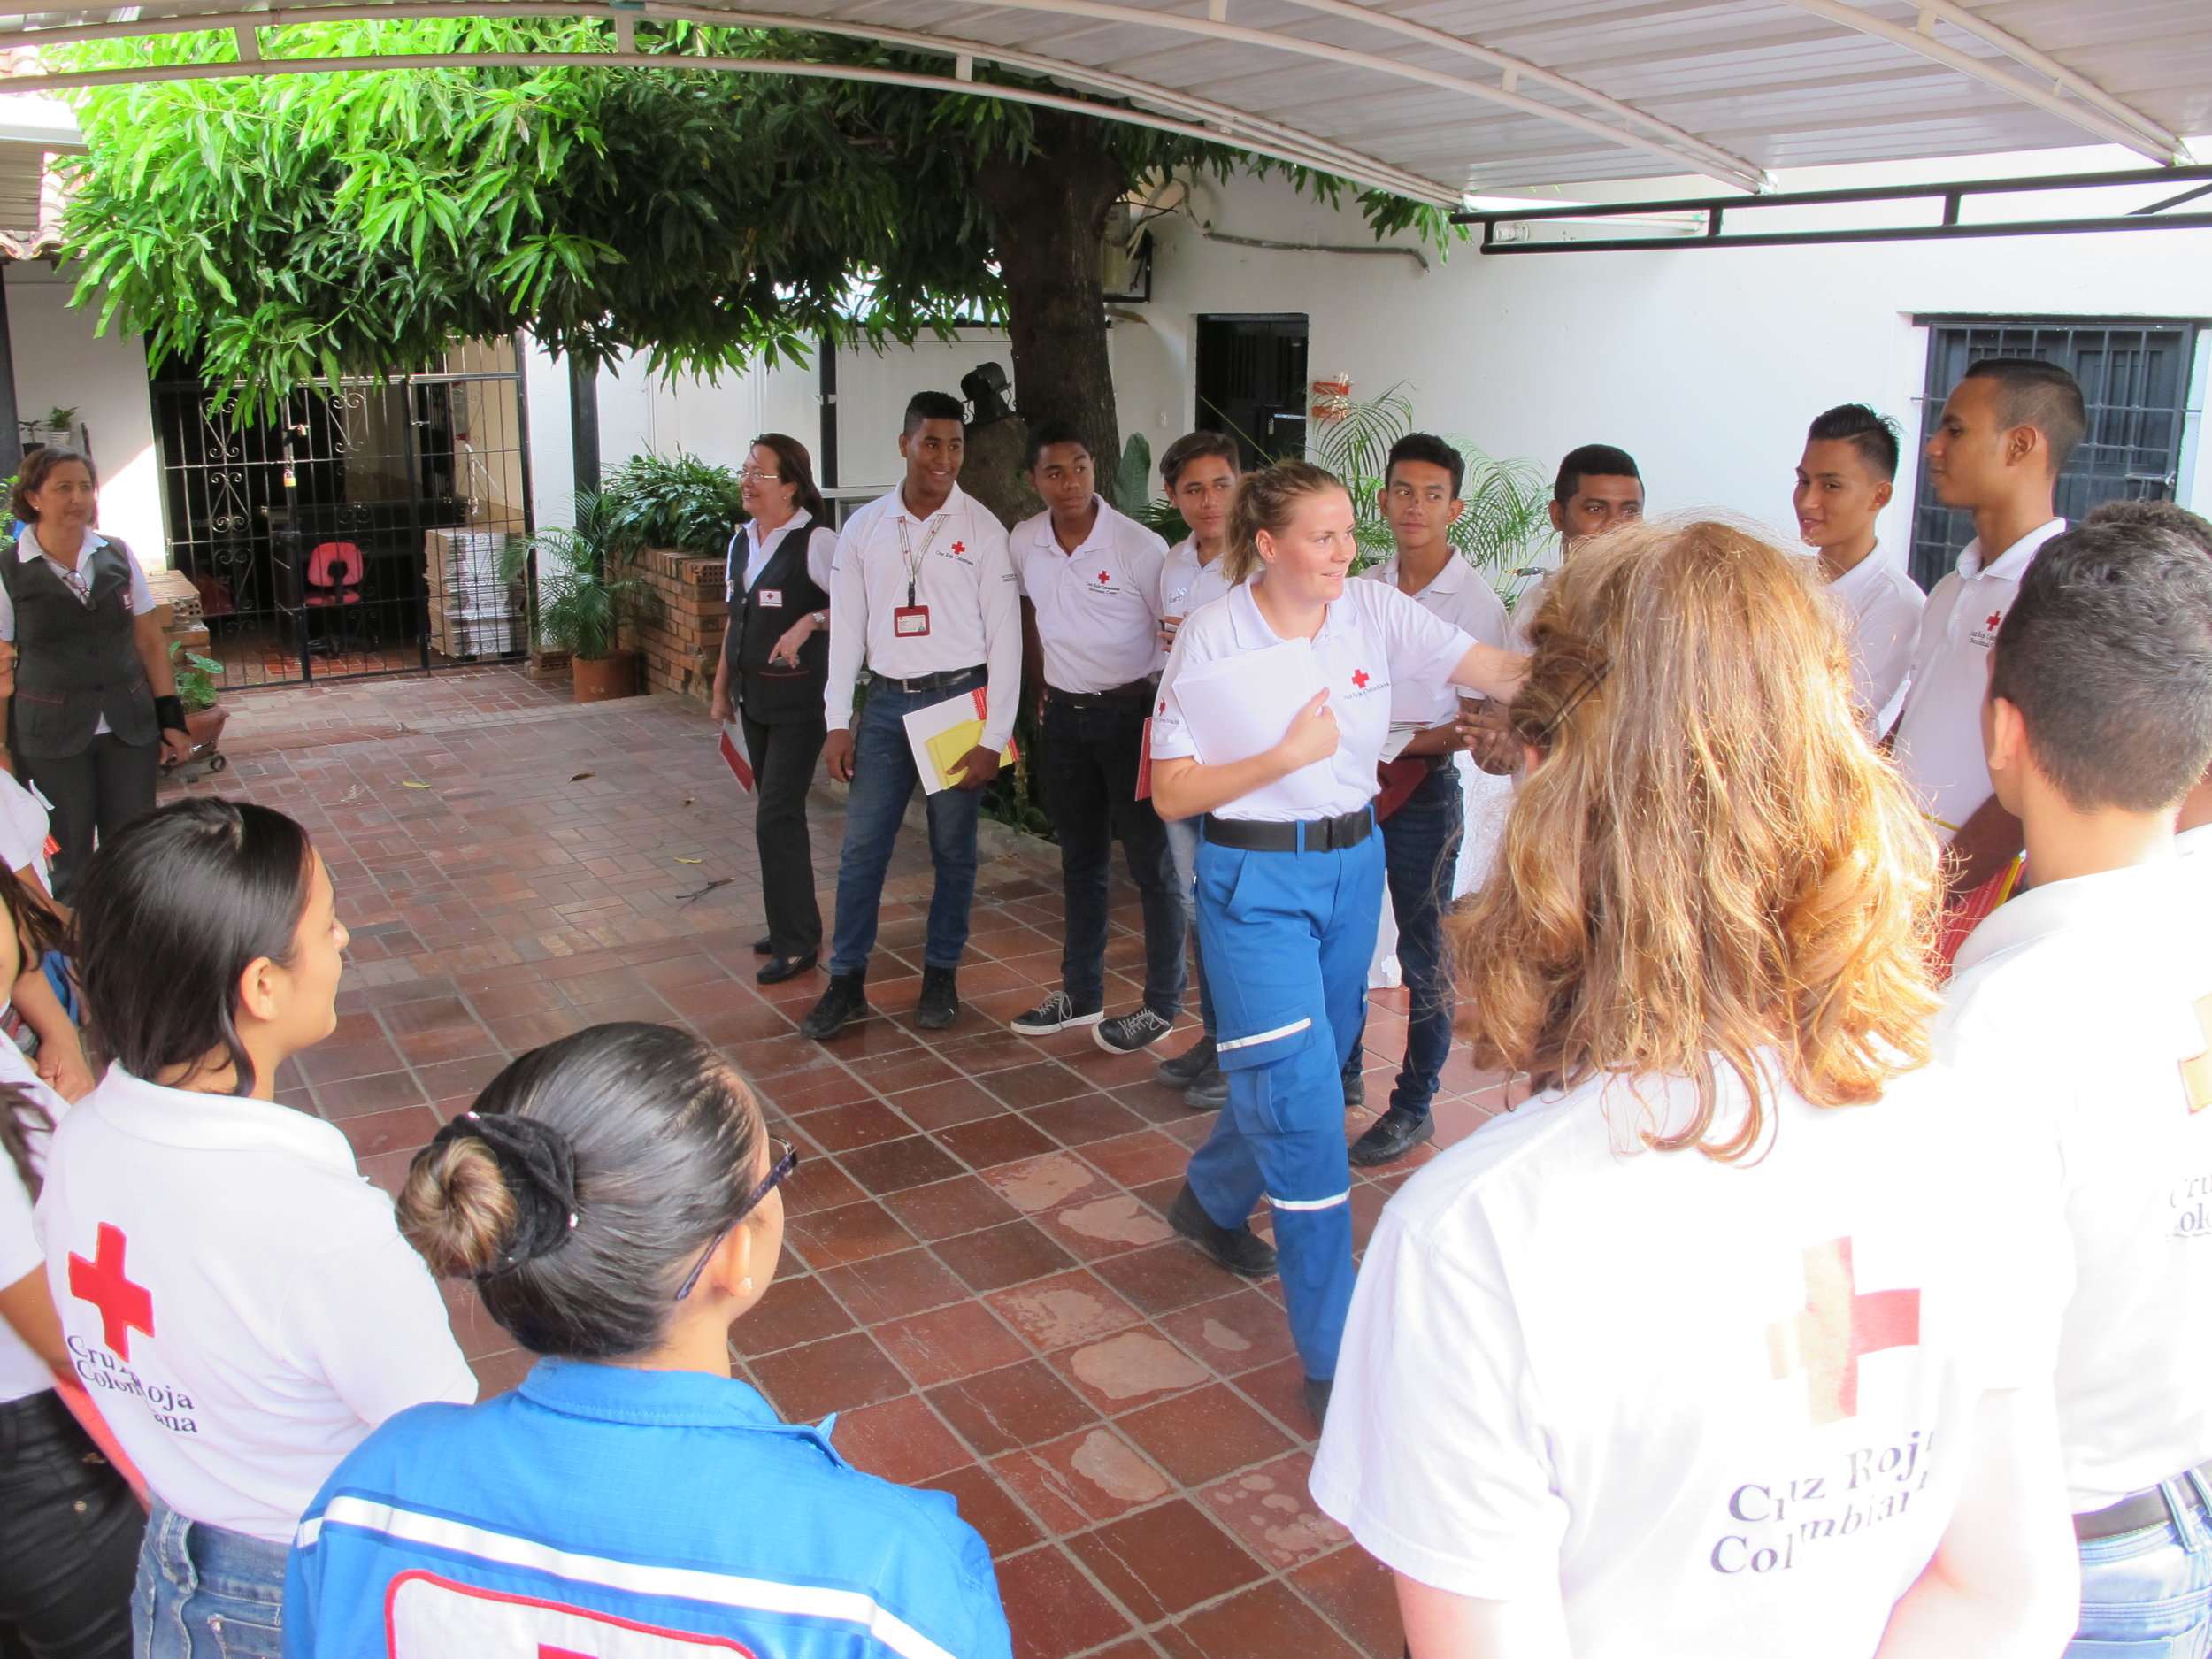 Malene facilitating an activity in Valledupar.